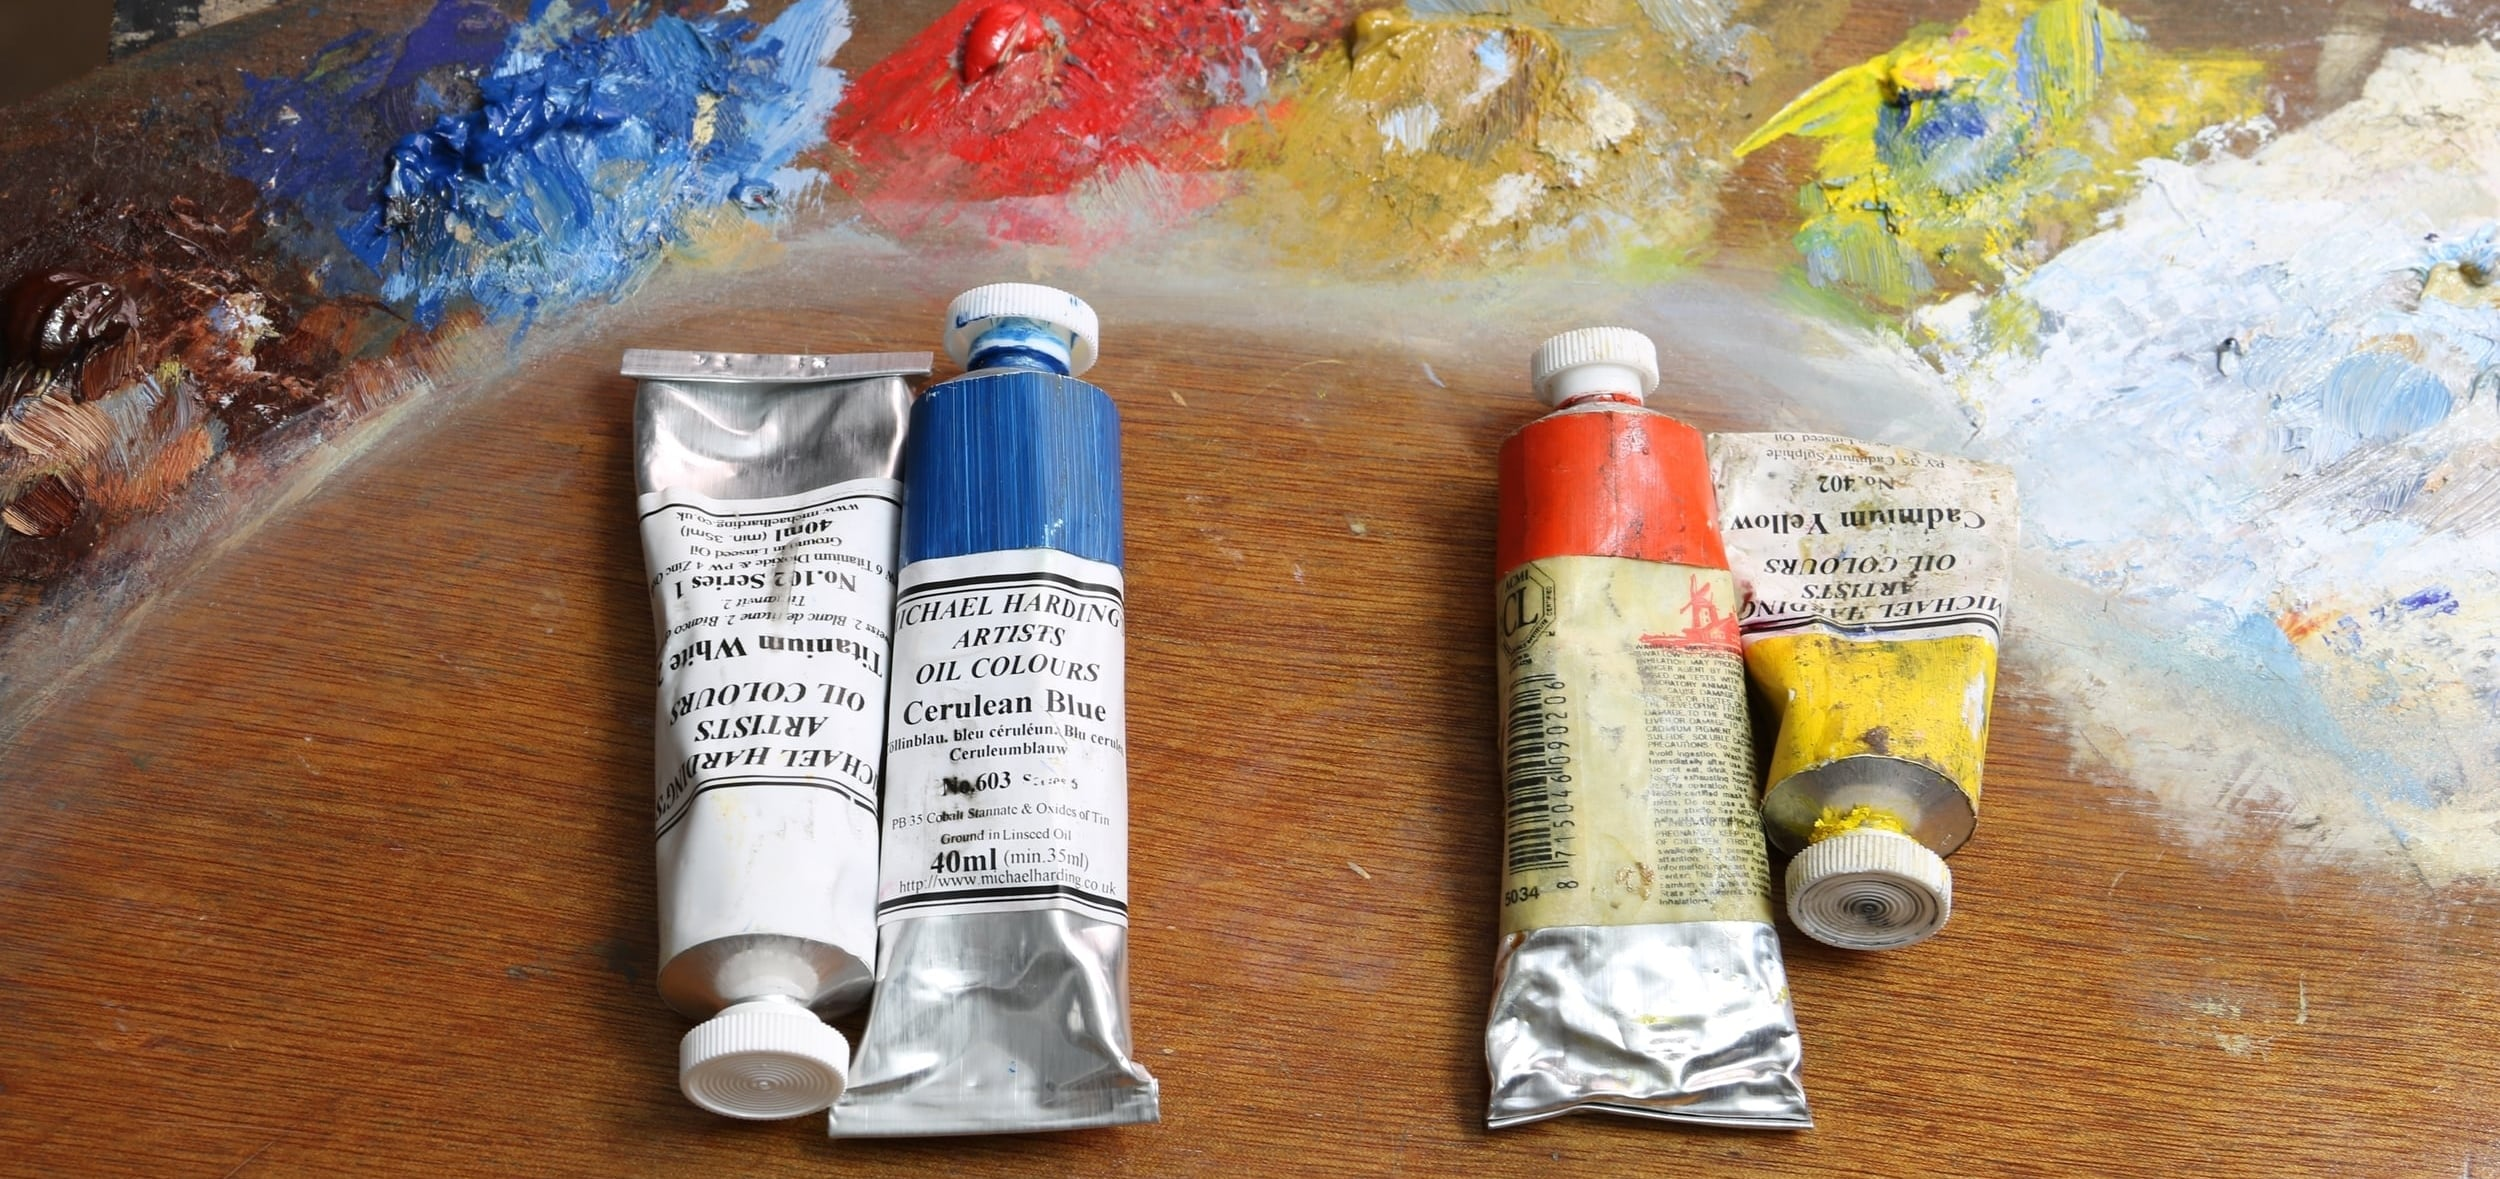 Titanium white & Cerulean blue vs Cadium red & Cadium yellow. (paint from Michael Harding)